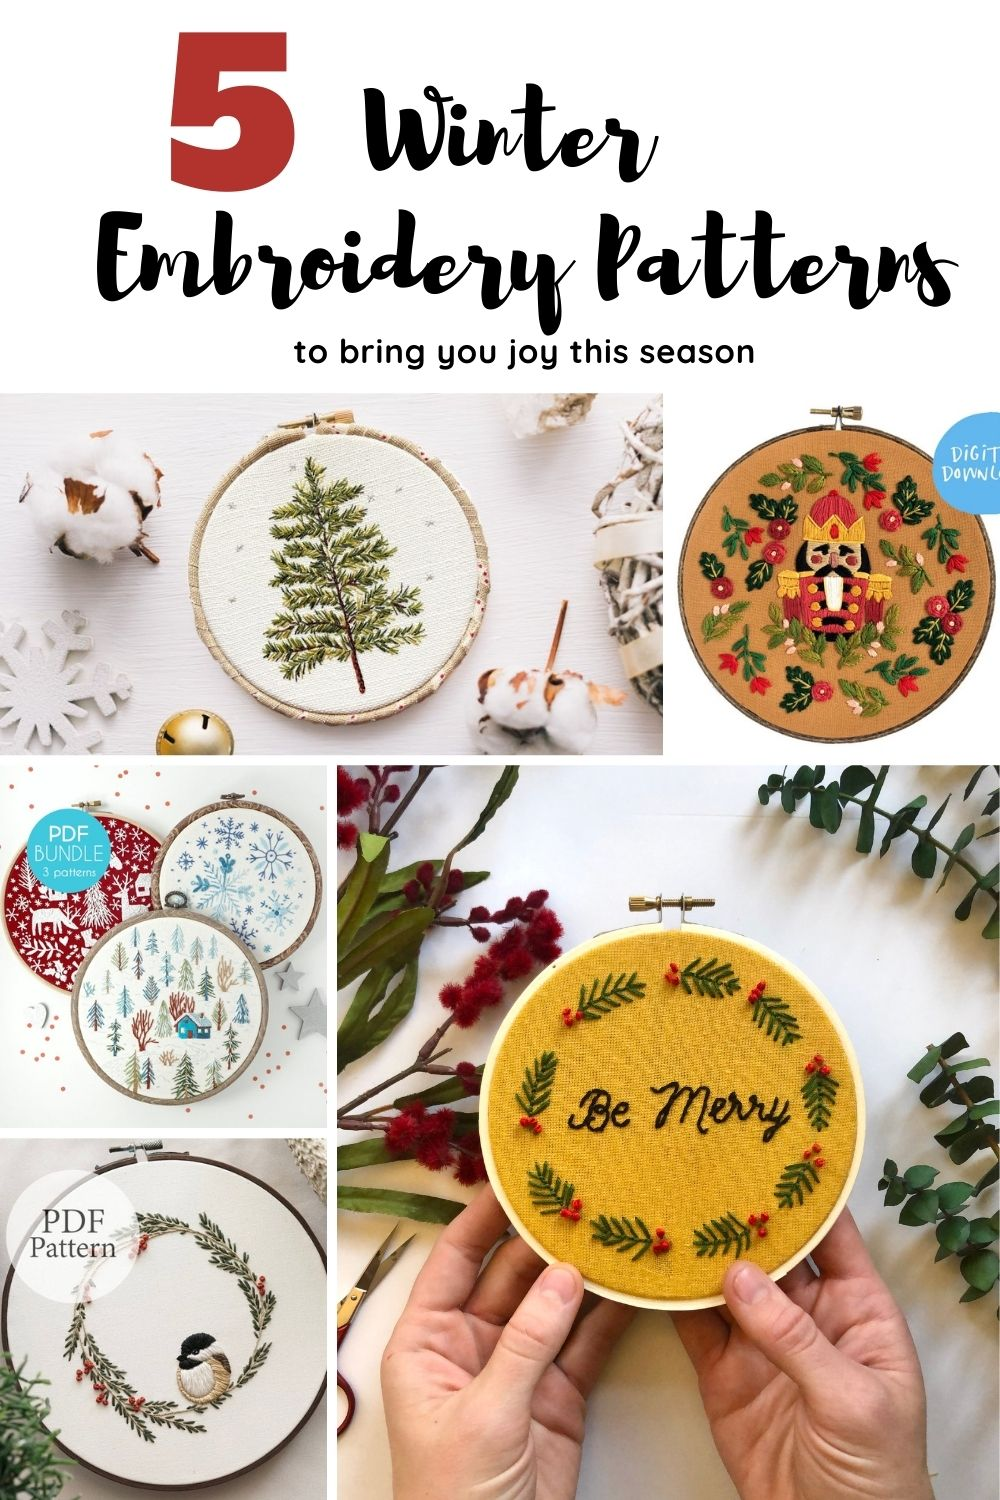 5 Winter Hand Embroidery Patterns To Bring You Joy This Season